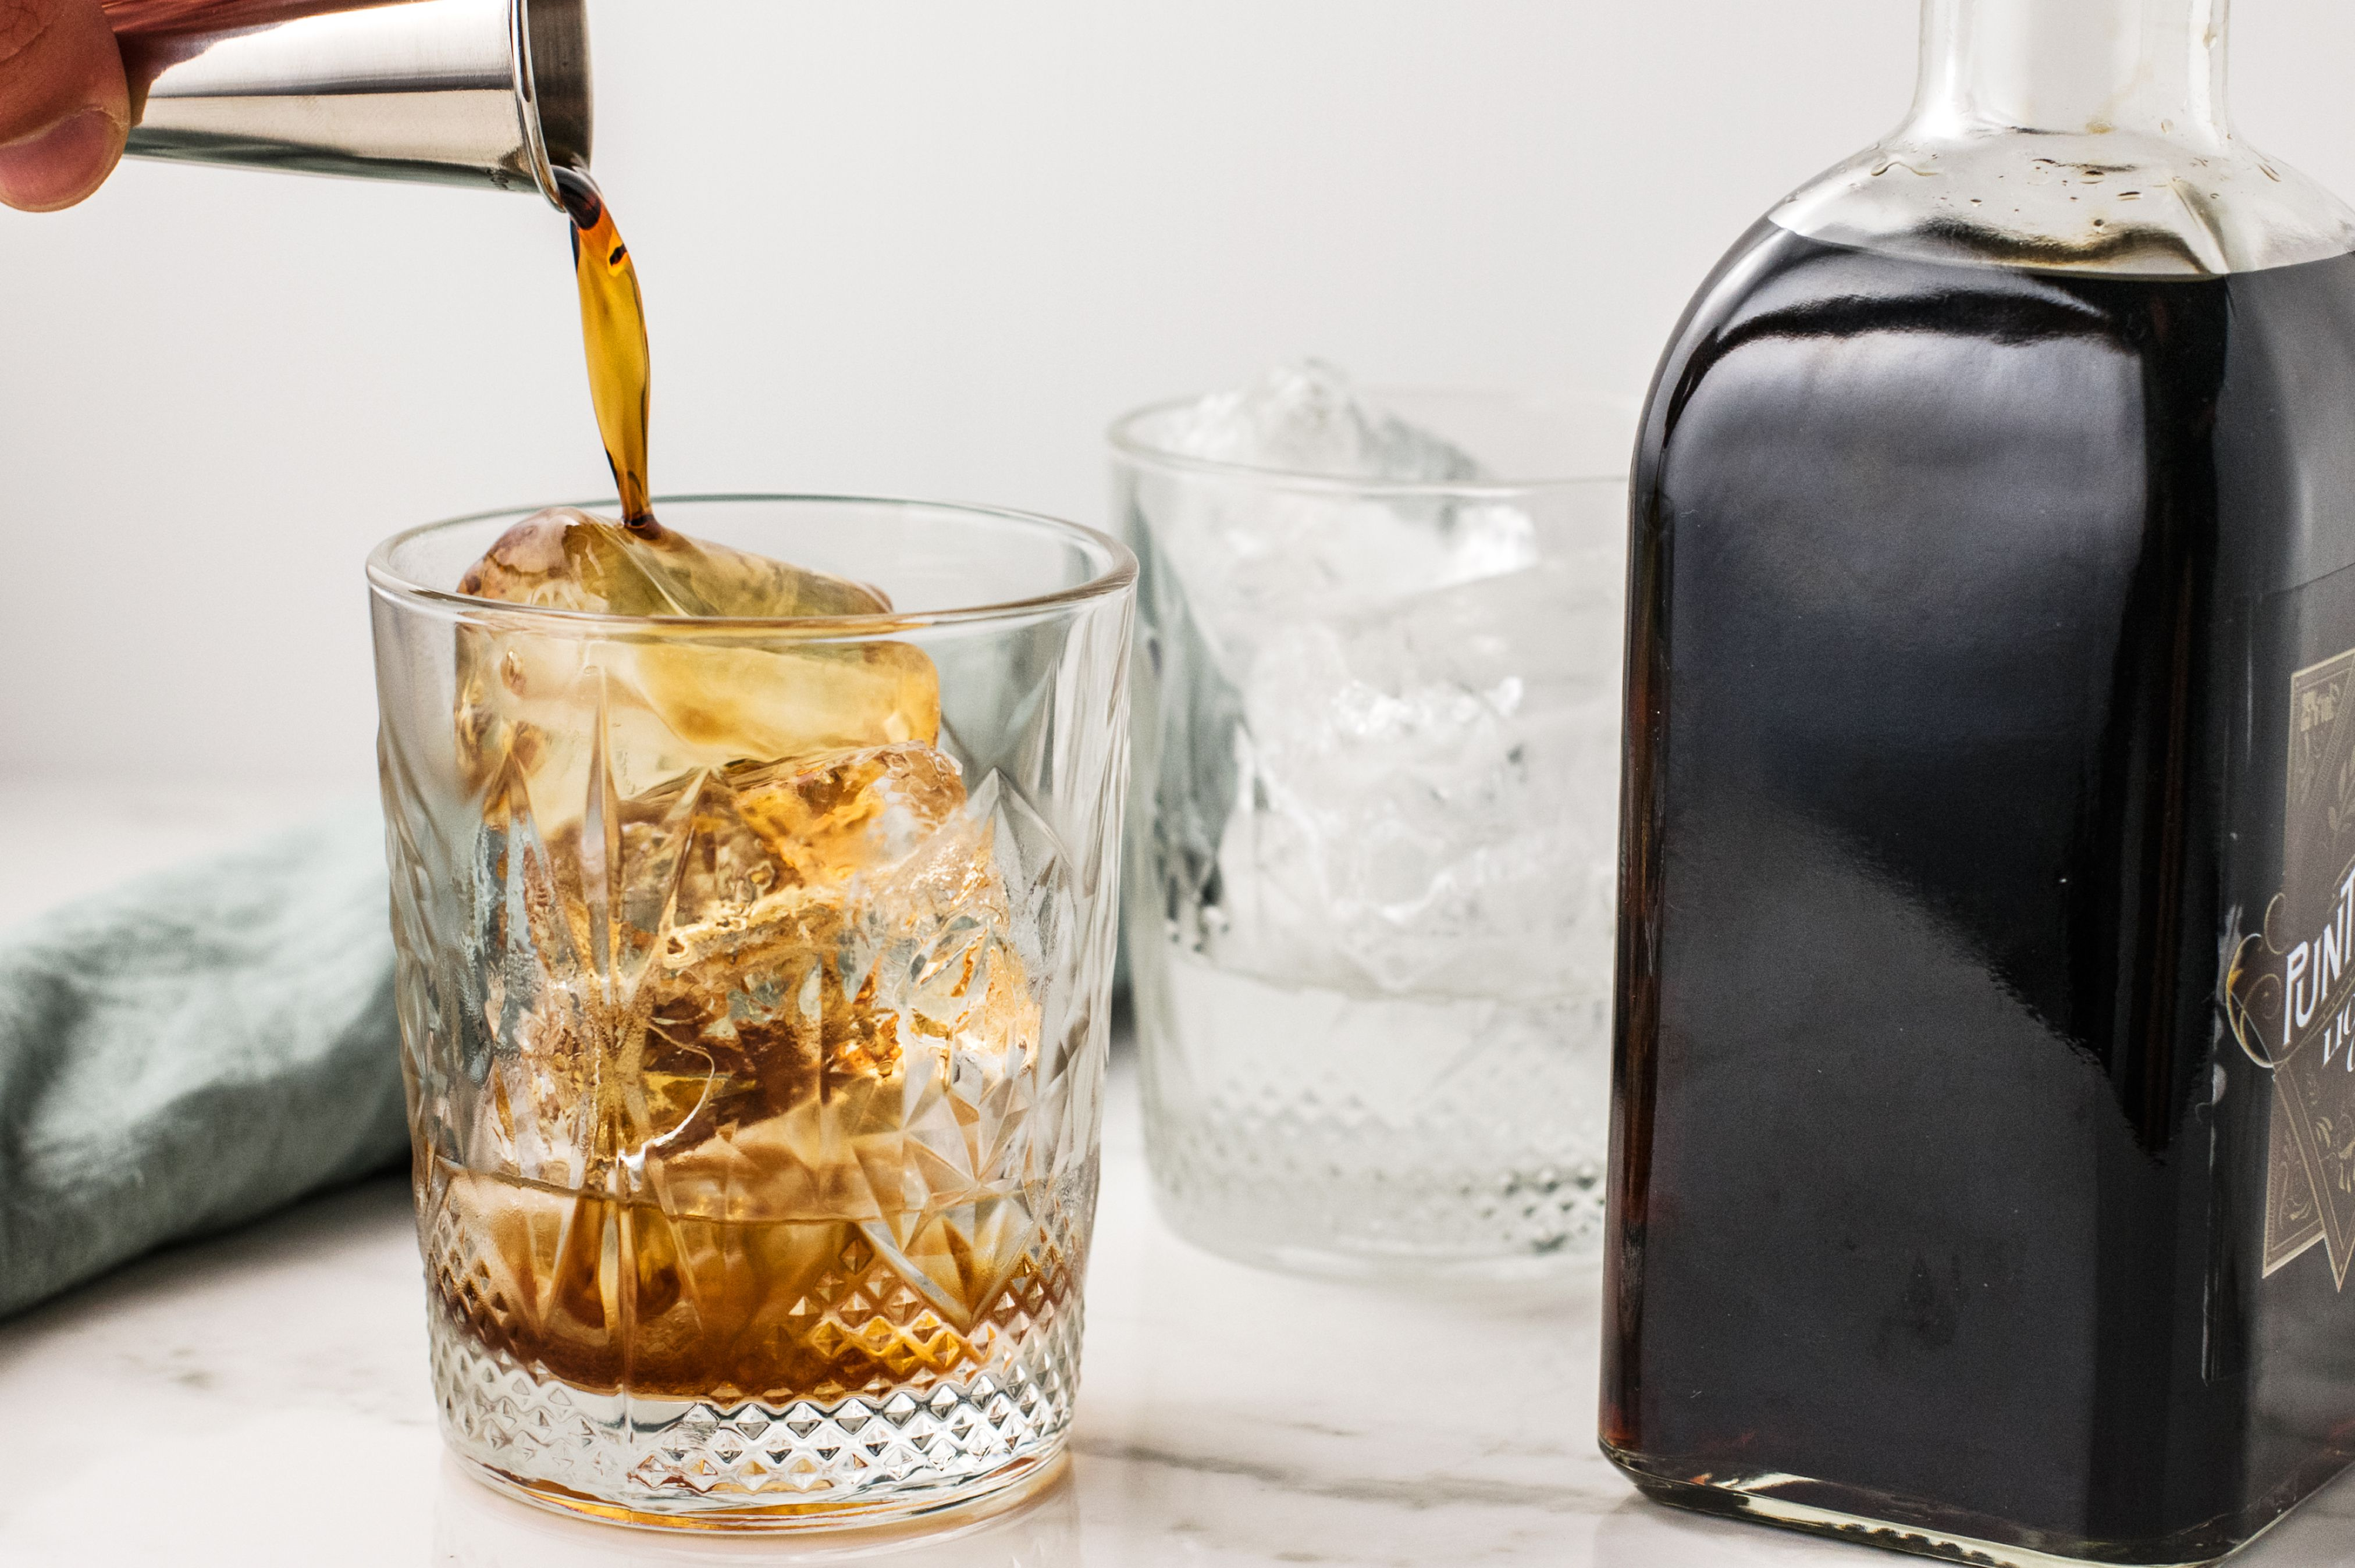 Vodka and coffee liqueur in an old-fashioned glass with ice